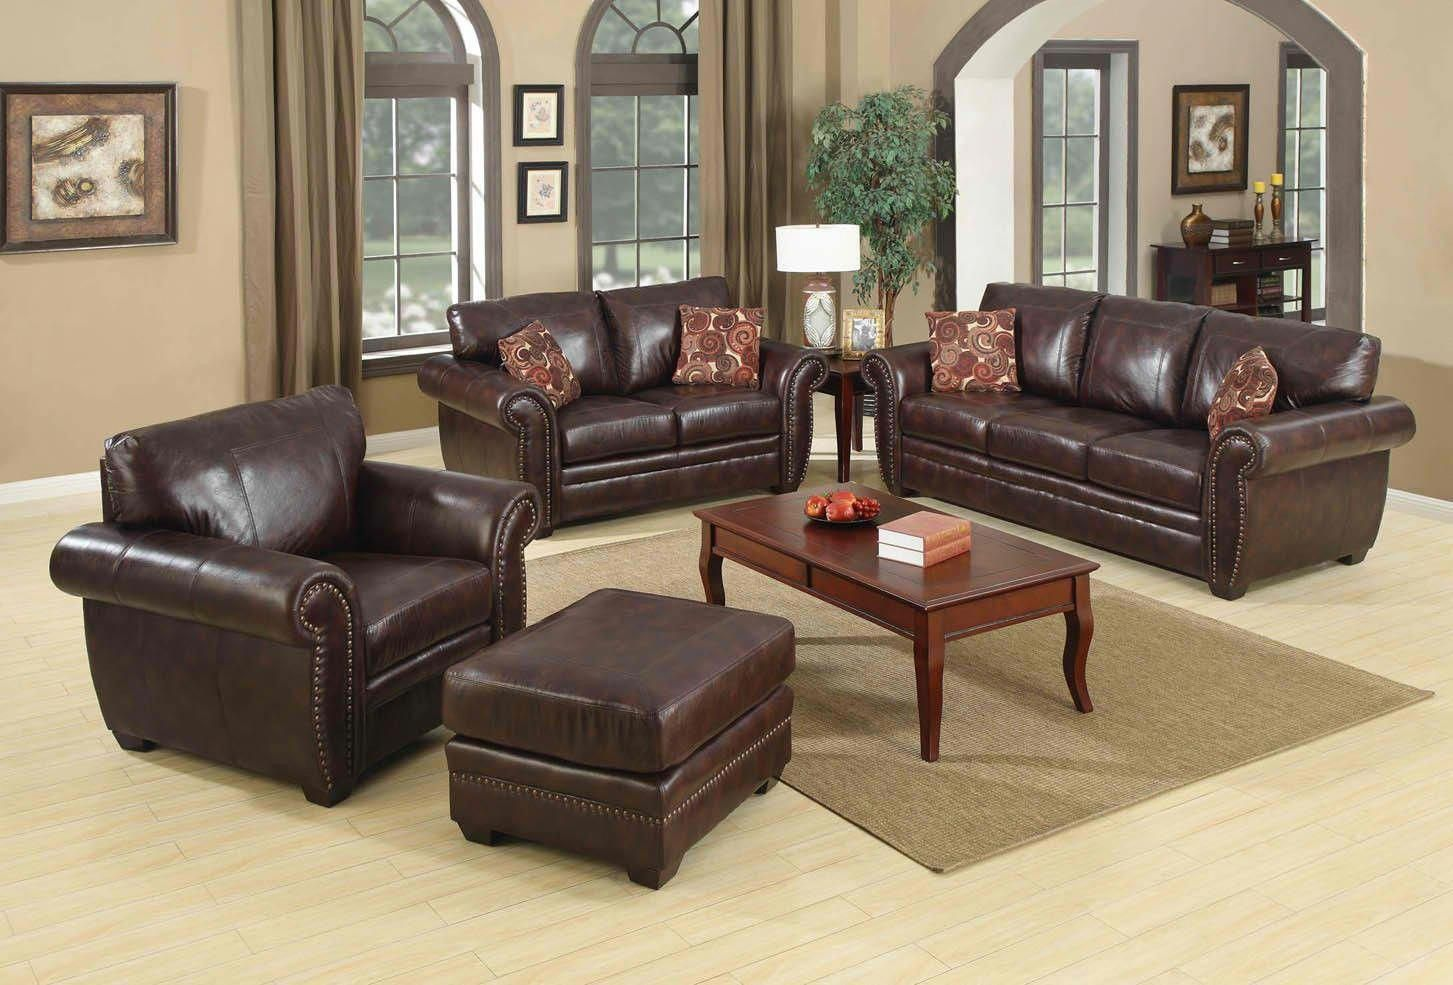 Contemporary Living Room Design With Black Leather Sofa Set And Brow Brown Leather Sofa Living Room Brown Leather Couch Living Room Brown Furniture Living Room